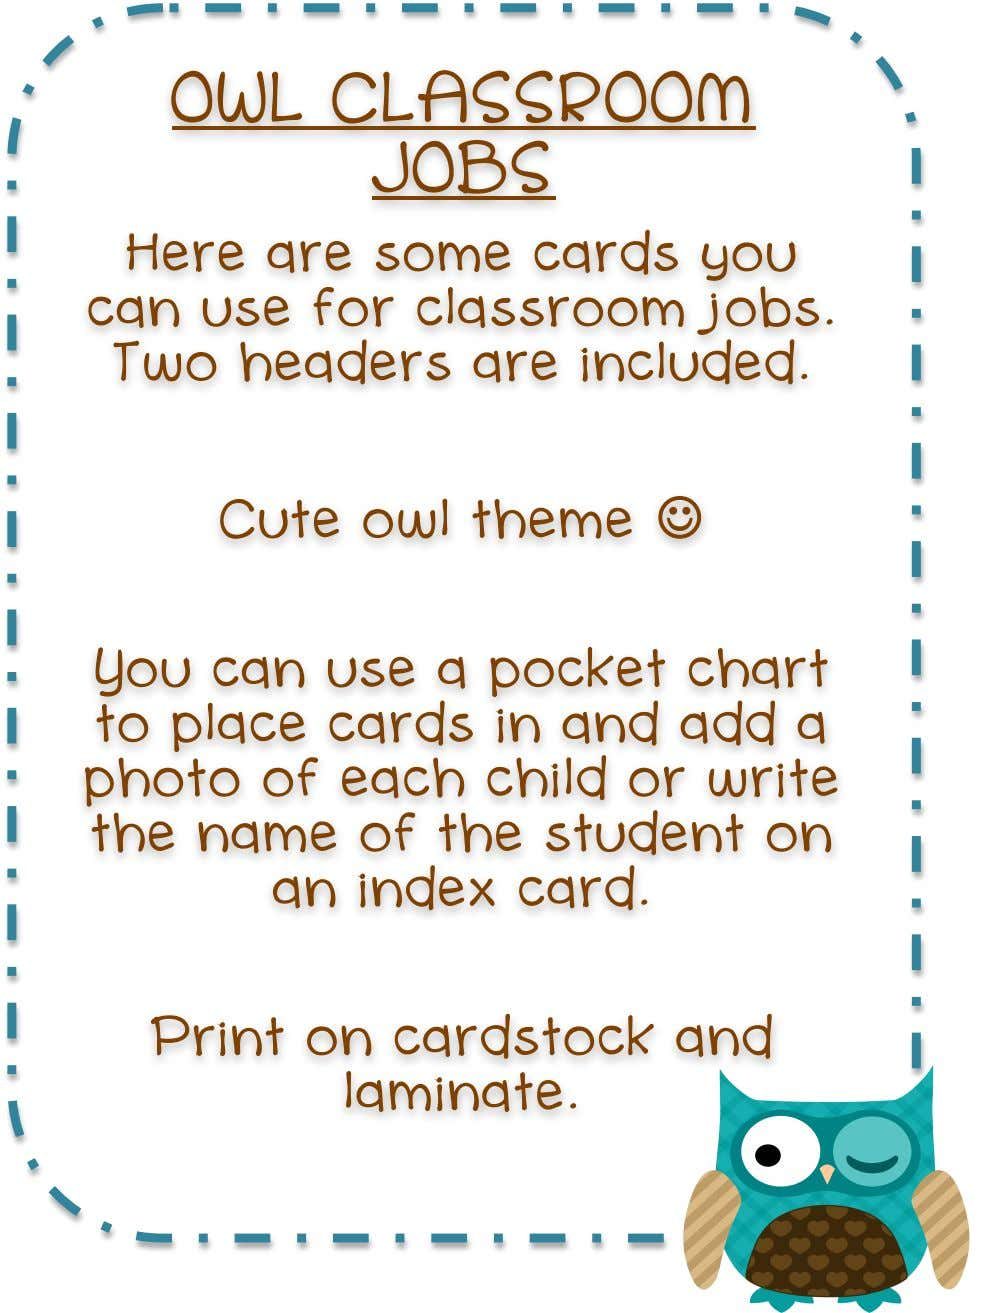 OWL CLASSROON JOBS Here are some cards you can use for classroom jobs. Two headers